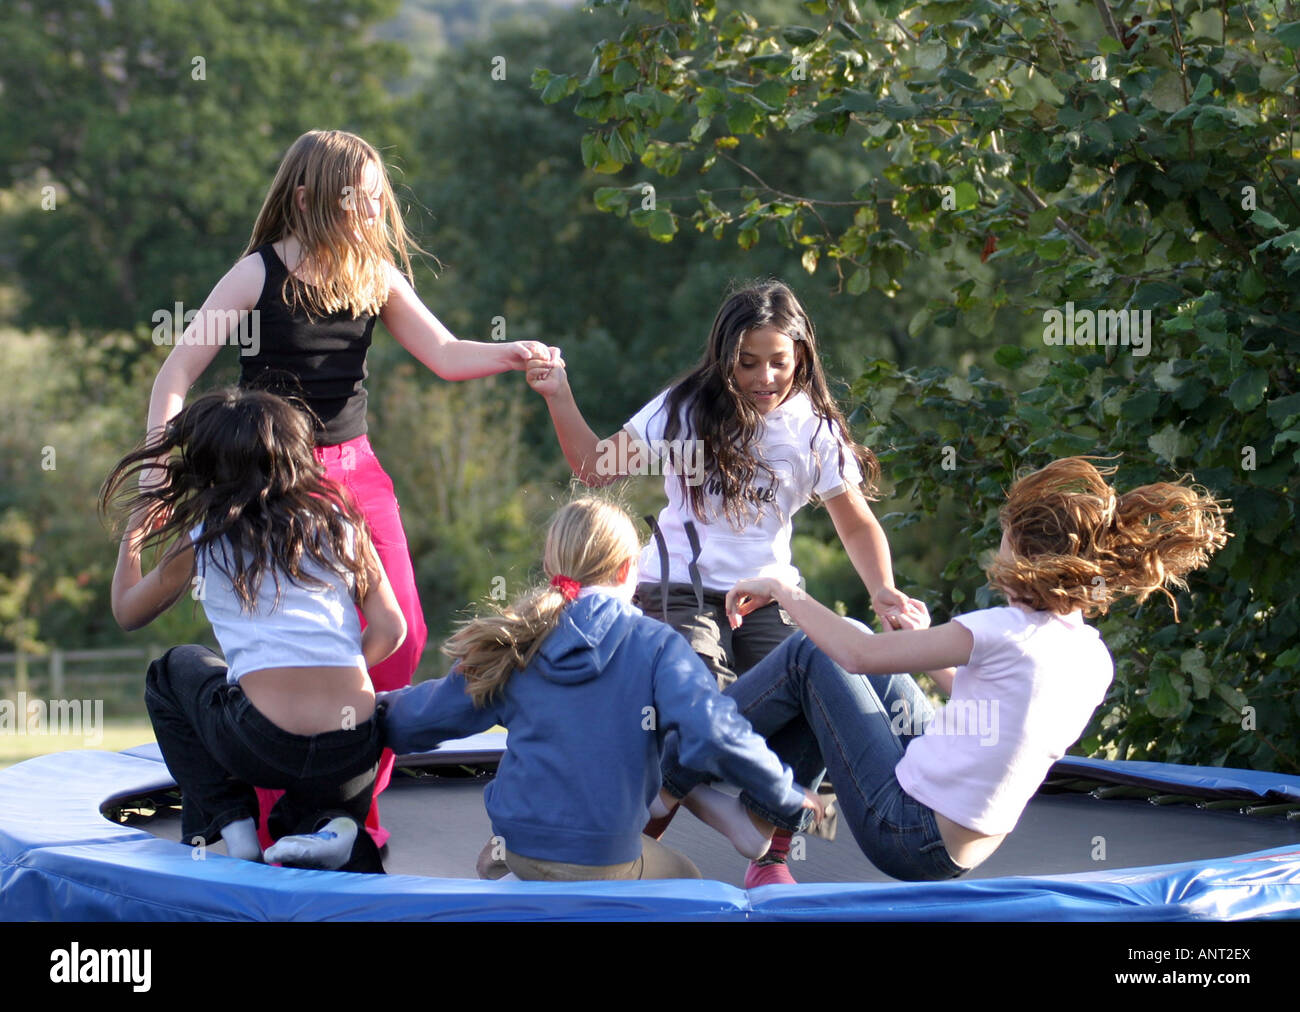 five-girls-having-a-great-time-outdoors-